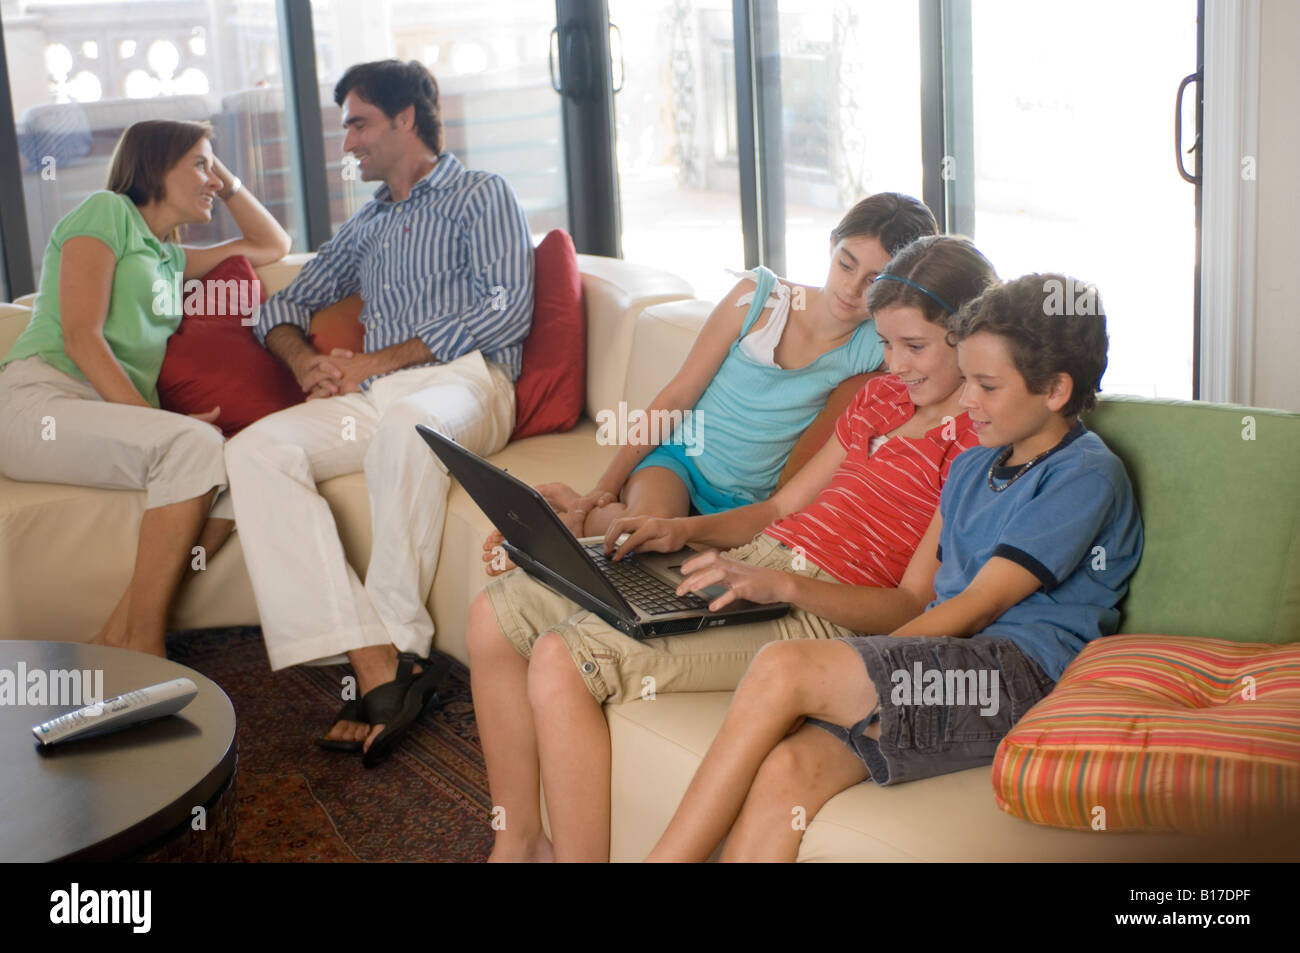 Kids at home on Laptop computer with parents - Stock Image